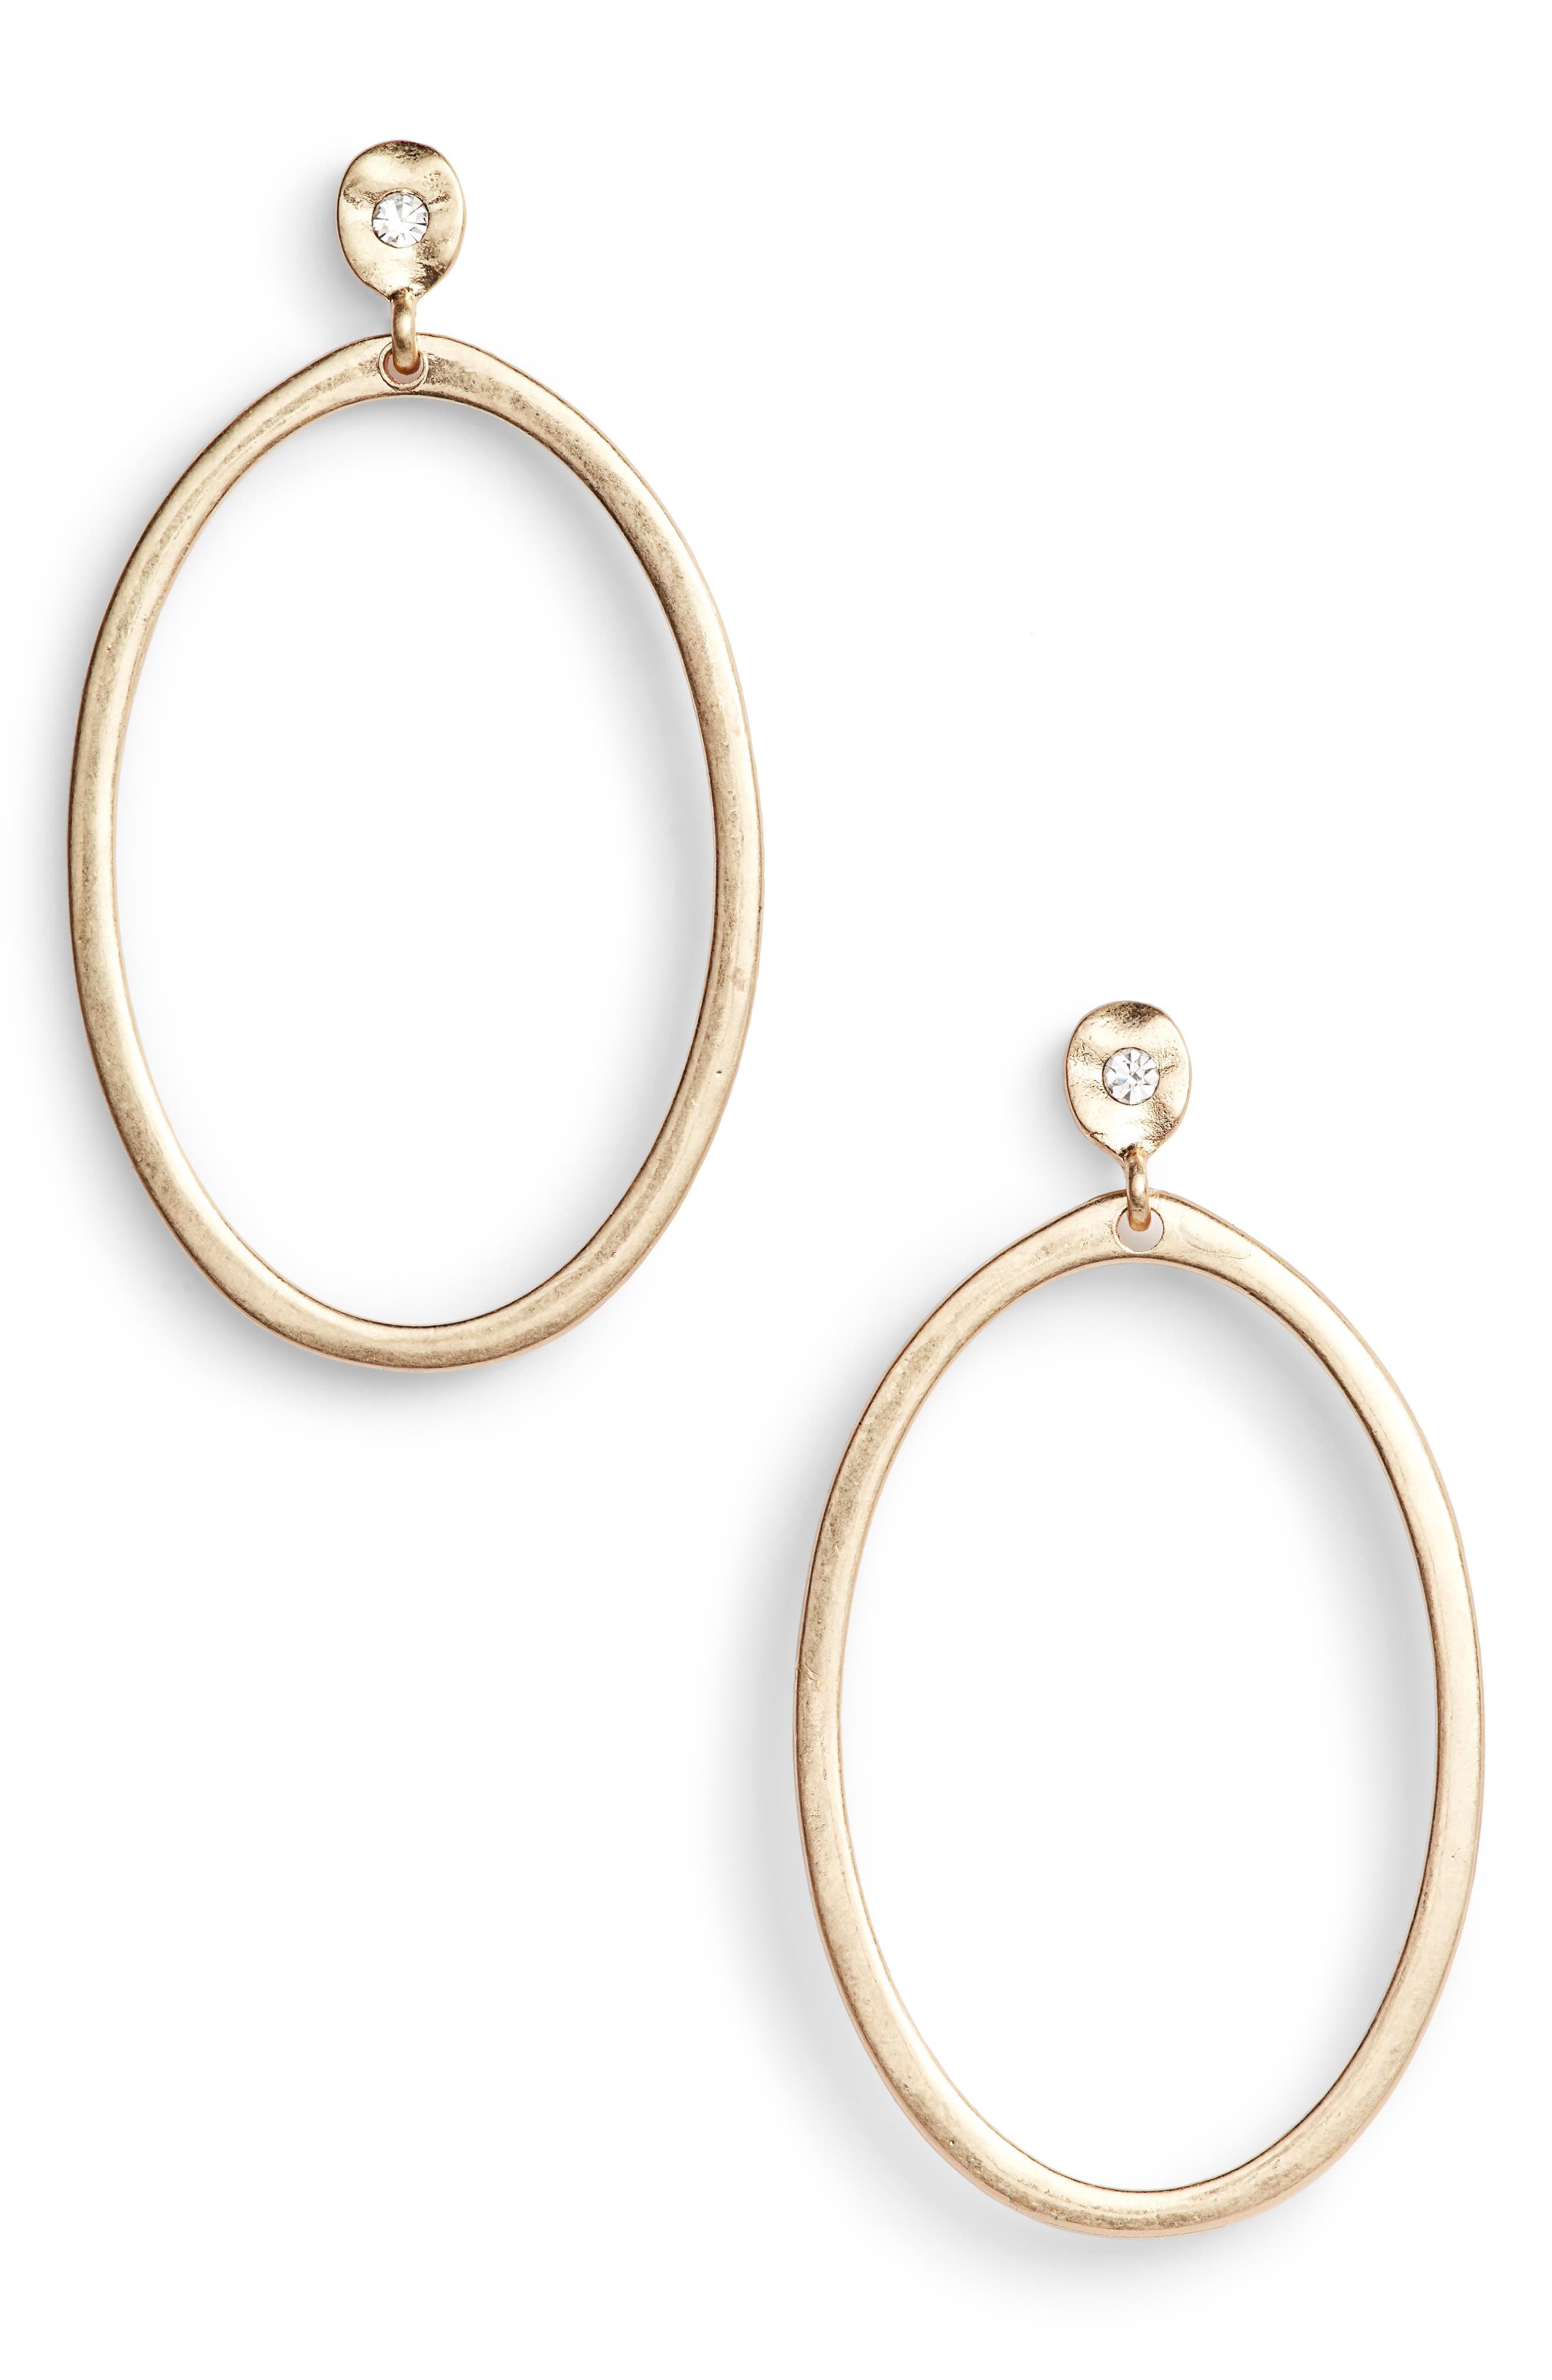 Organic Oval Hoop Earrings,                             Main thumbnail 1, color,                             Clear- Gold